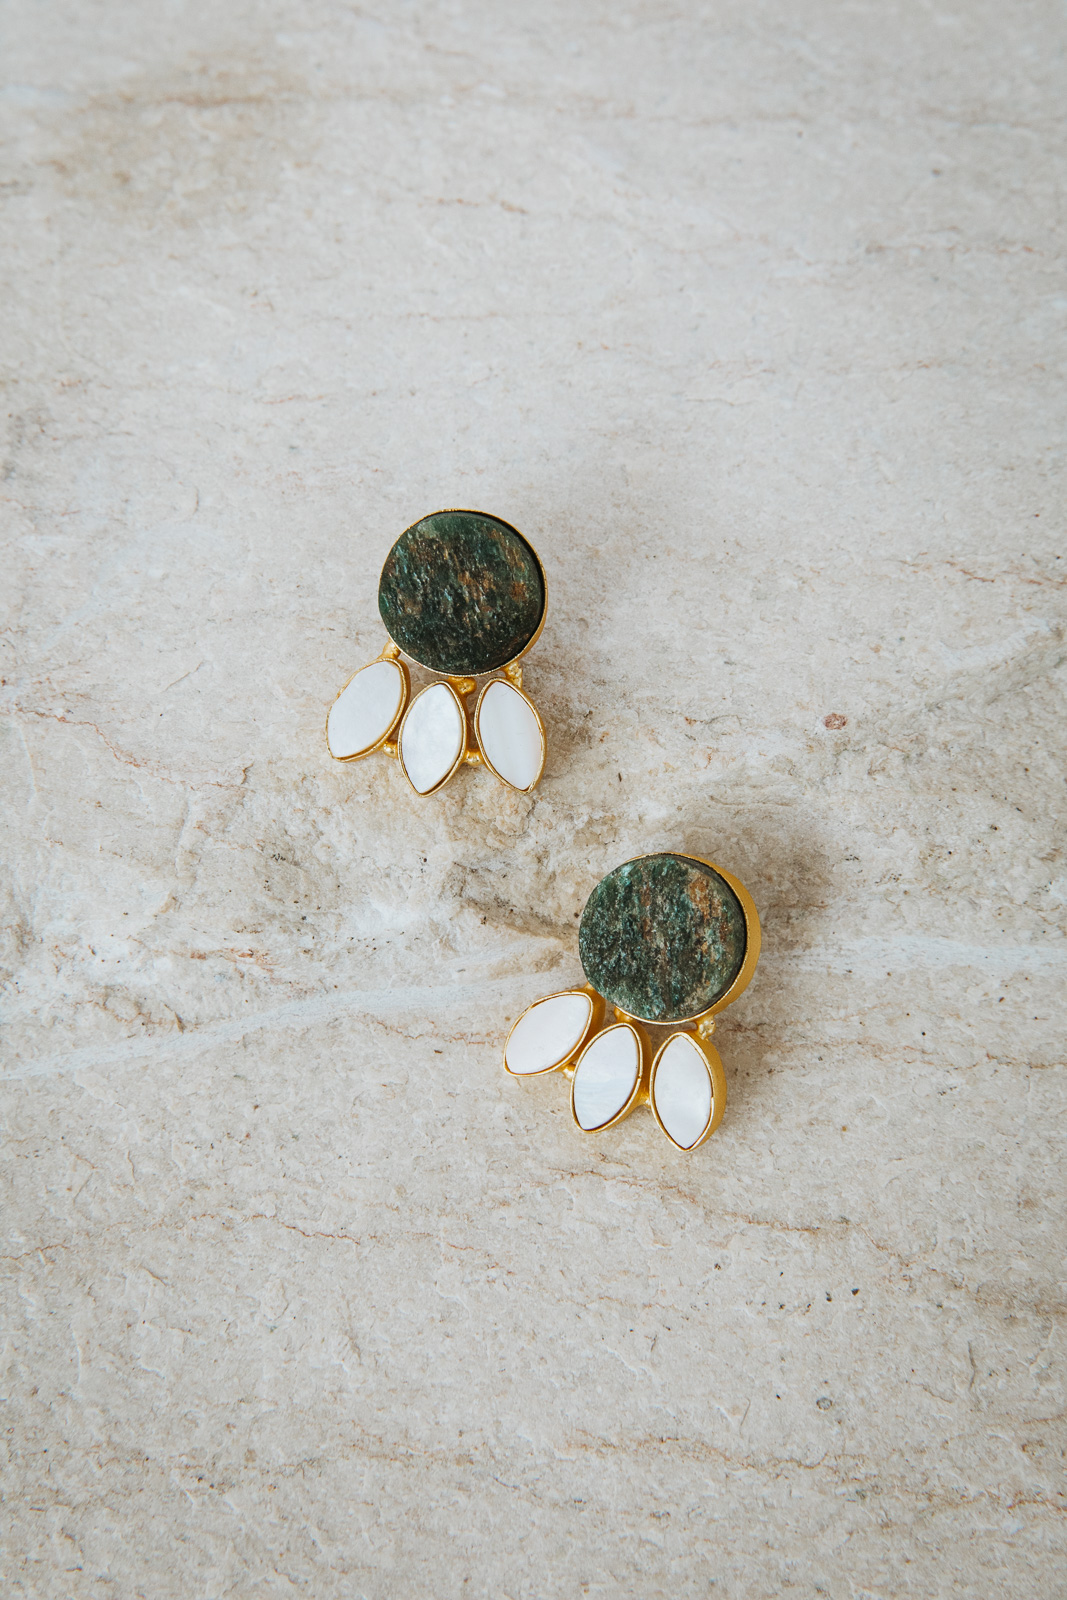 MINI DEEP EMERALD GREEN WITH MOTHER OF PEARL EARRINGS